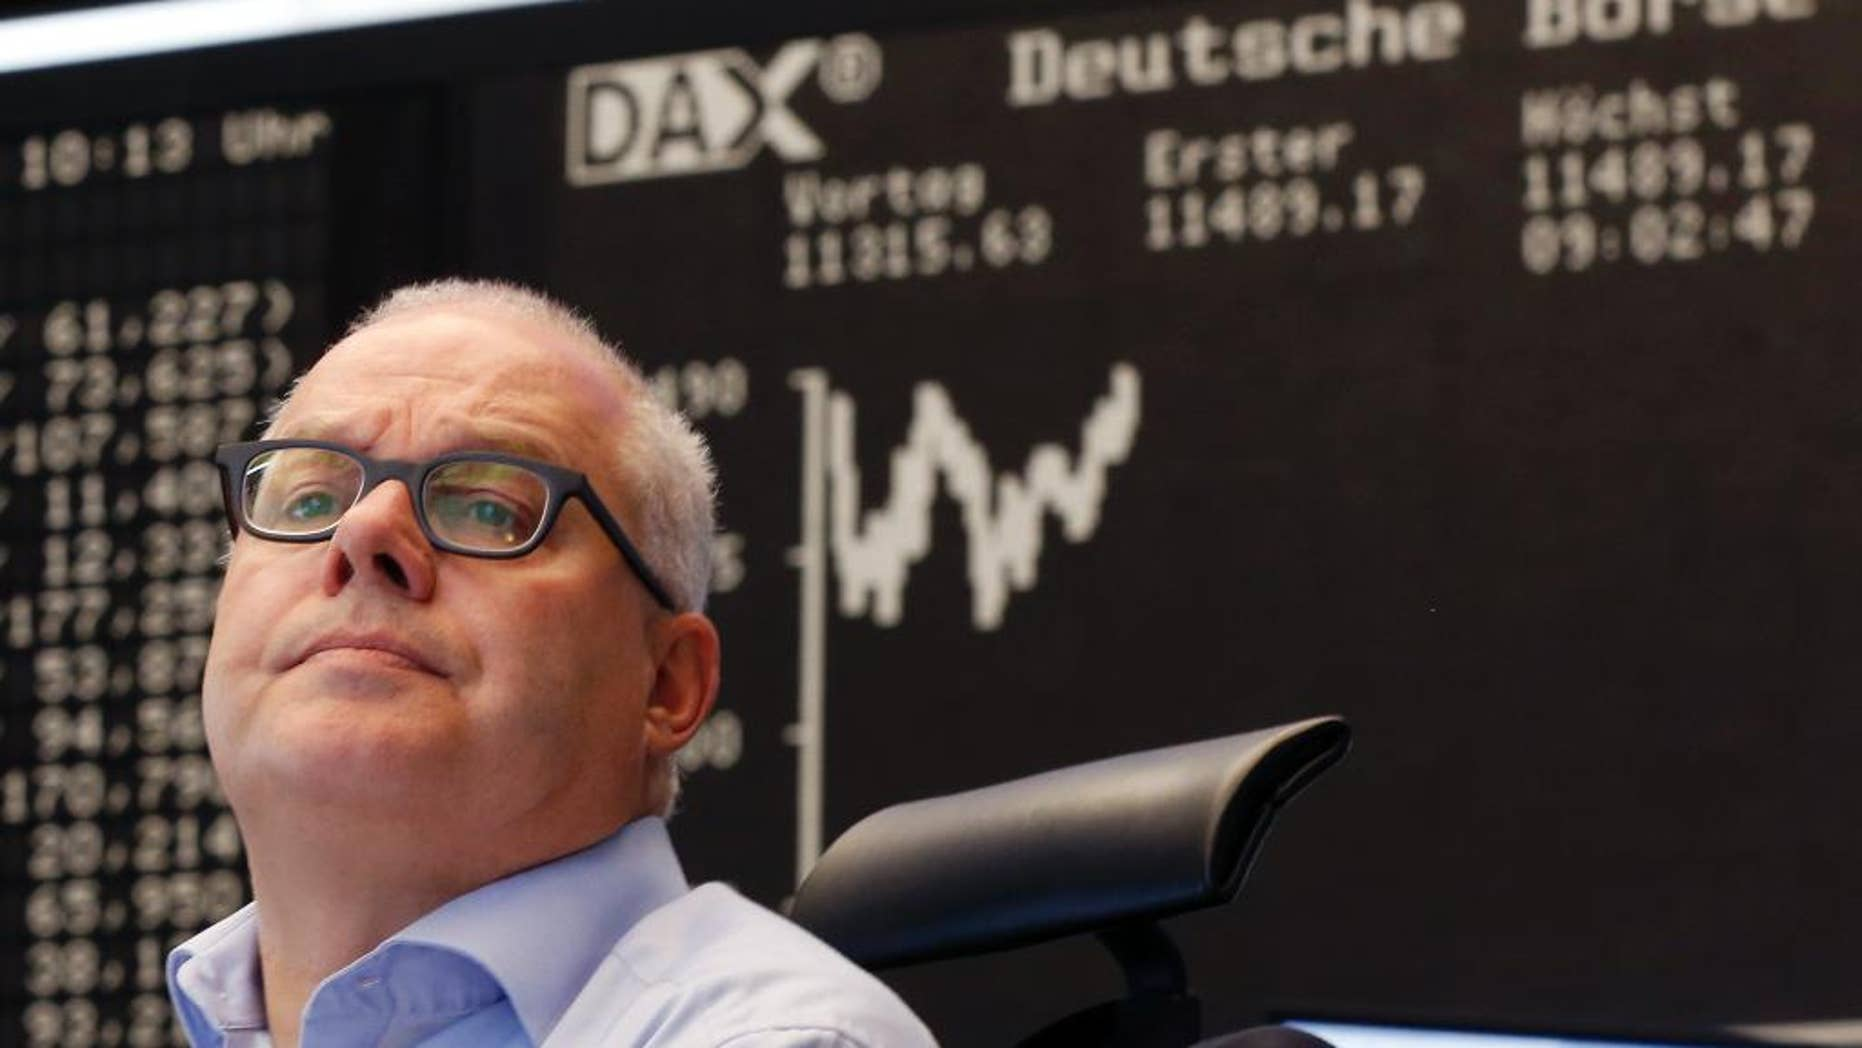 A trader watches his screens at the stock market in Frankfurt, Germany, Monday, July 13, 2015. Global stock markets bounced higher Monday after Greece and its European creditors agreed on a bailout deal, substantially reducing the uncertainty about Greece's future in the euro common currency. (AP Photo/Michael Probst)